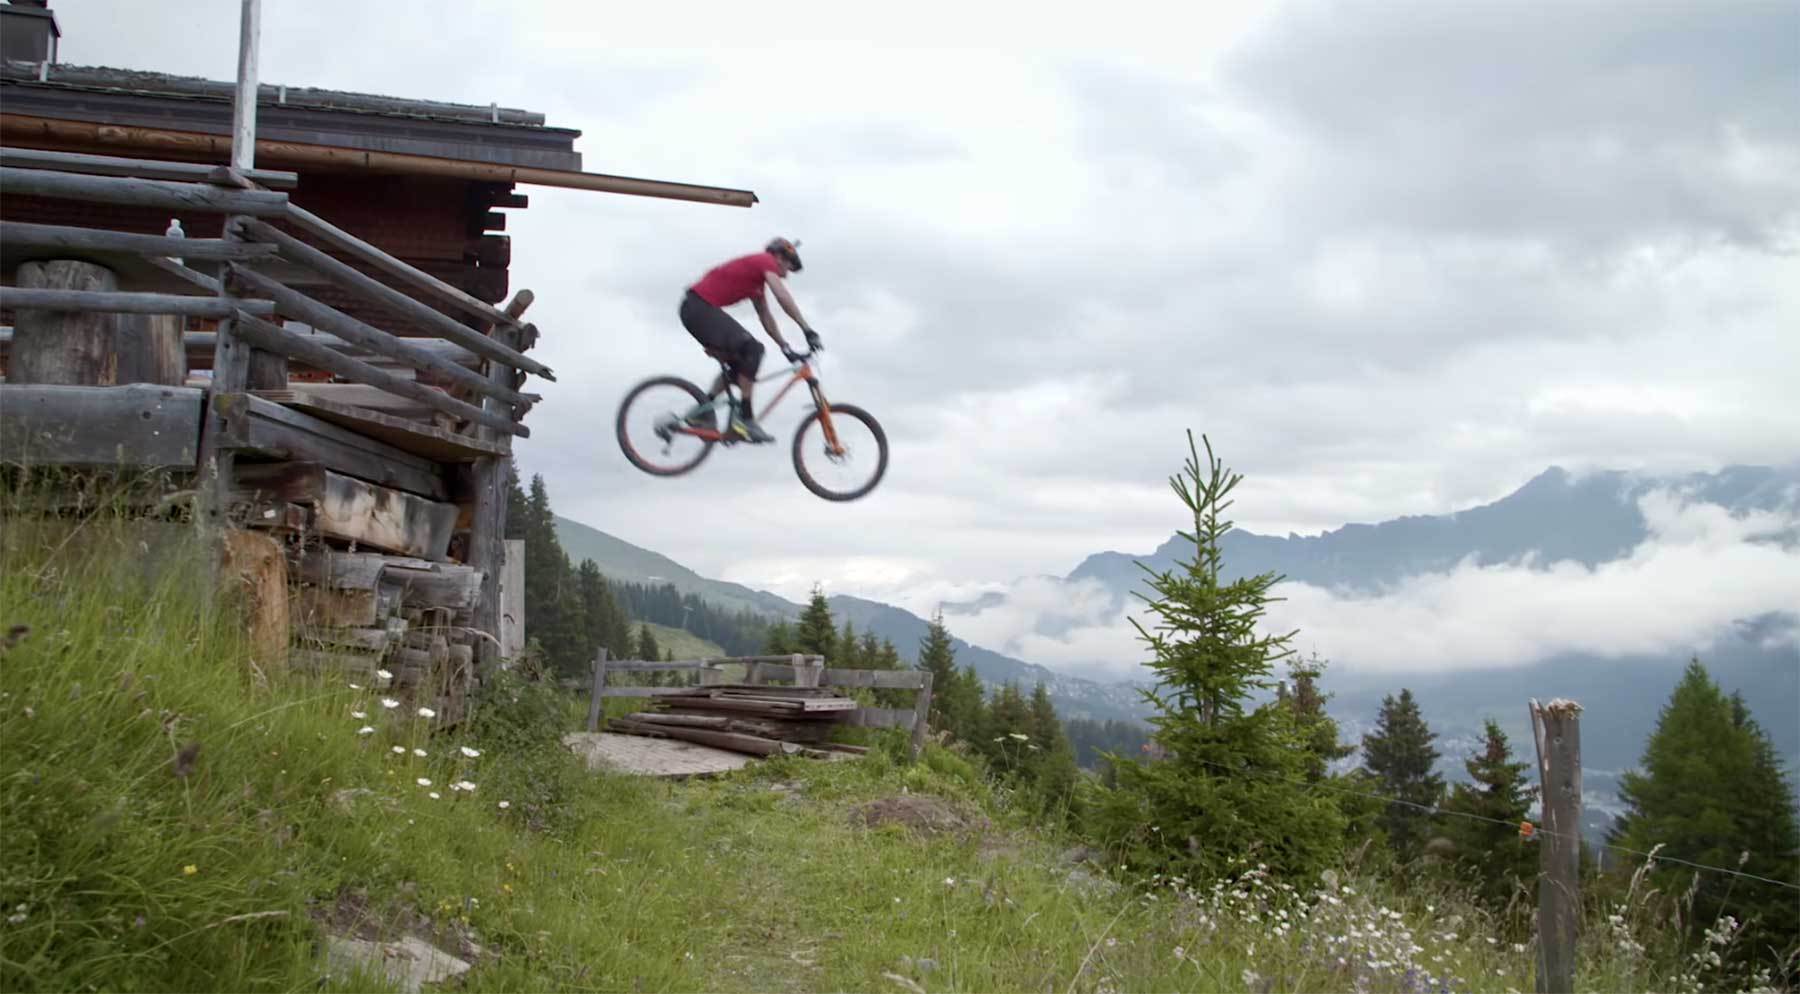 Danny MacAskill & Claudio Caluori: Home of Trails Danny-MacAskill-Claudio-Caluori-Home-of-Trails